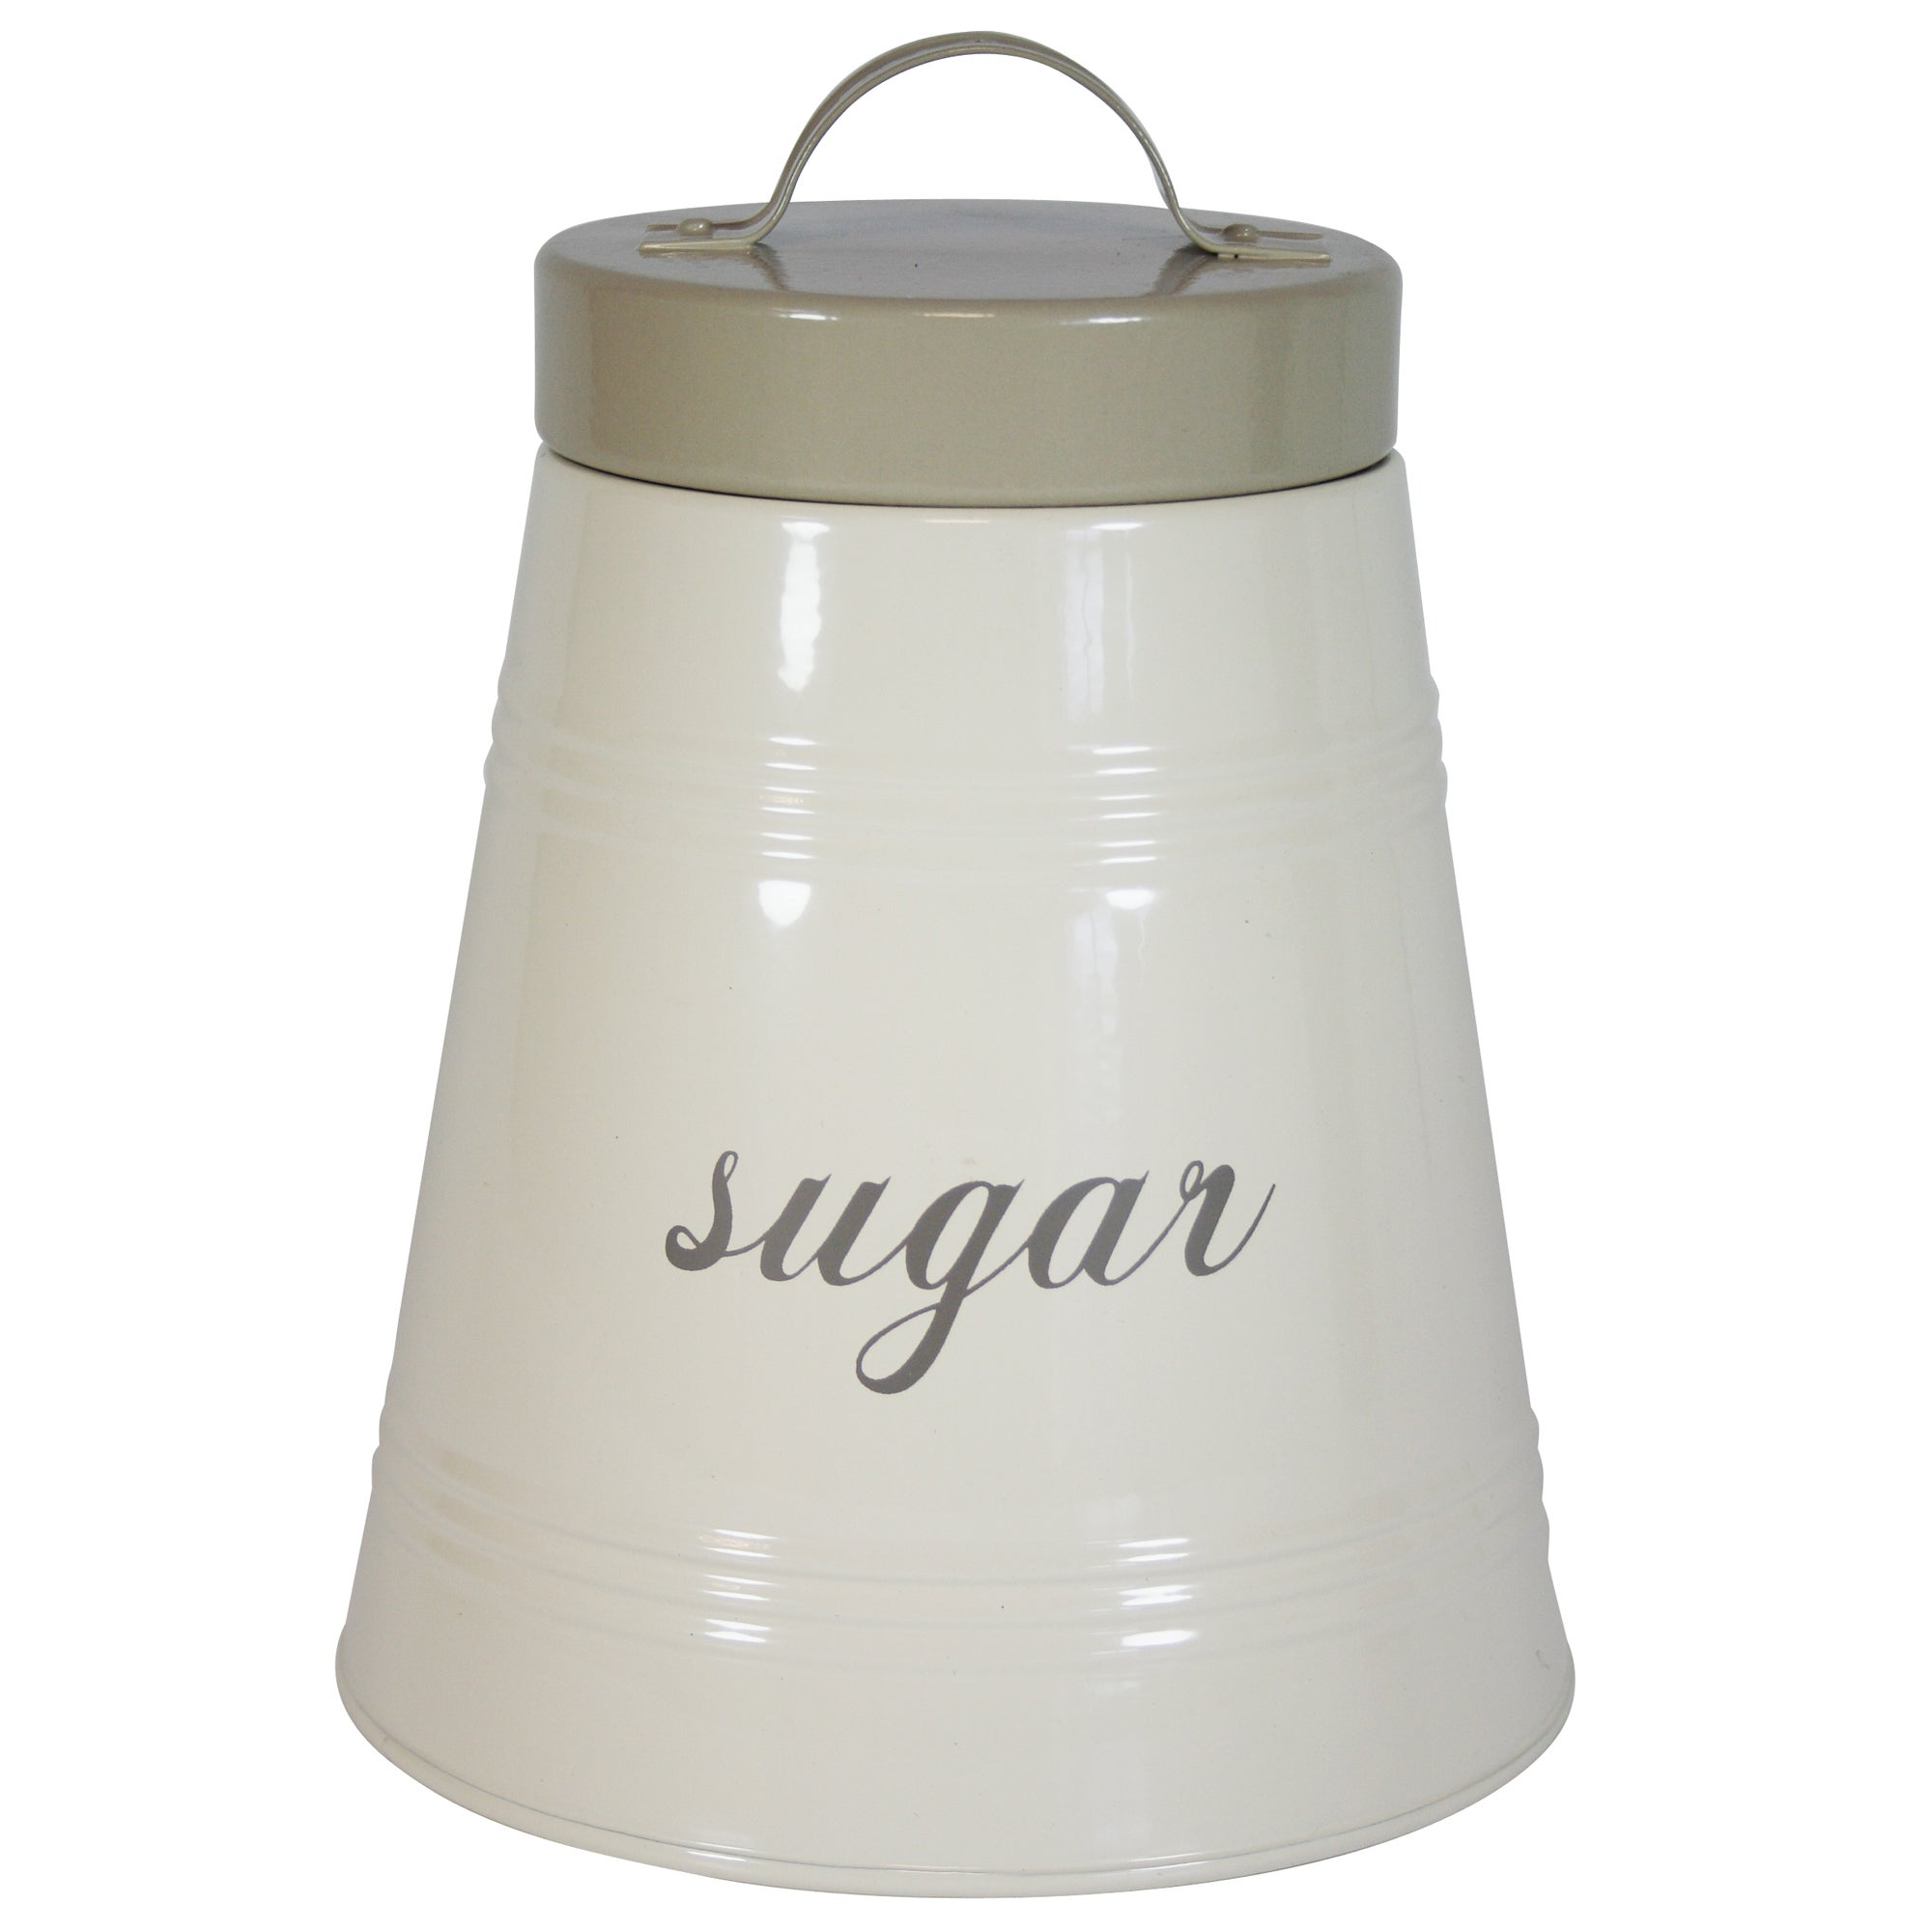 Farmhouse Collection Sugar Storage Canister